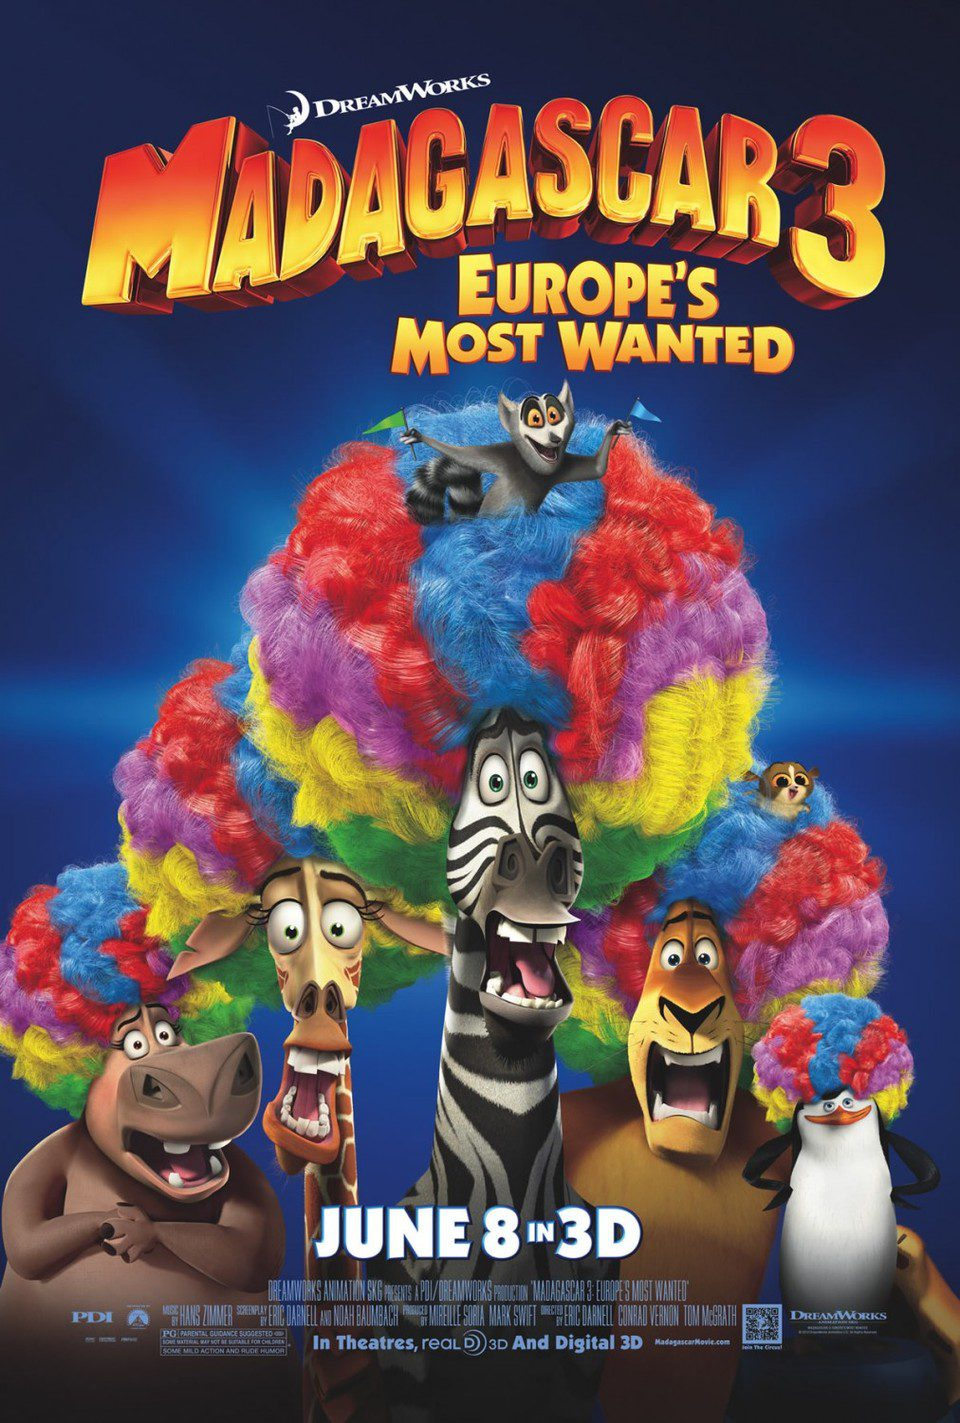 ee poster for Madagascar 3: Europe's Most Wanted